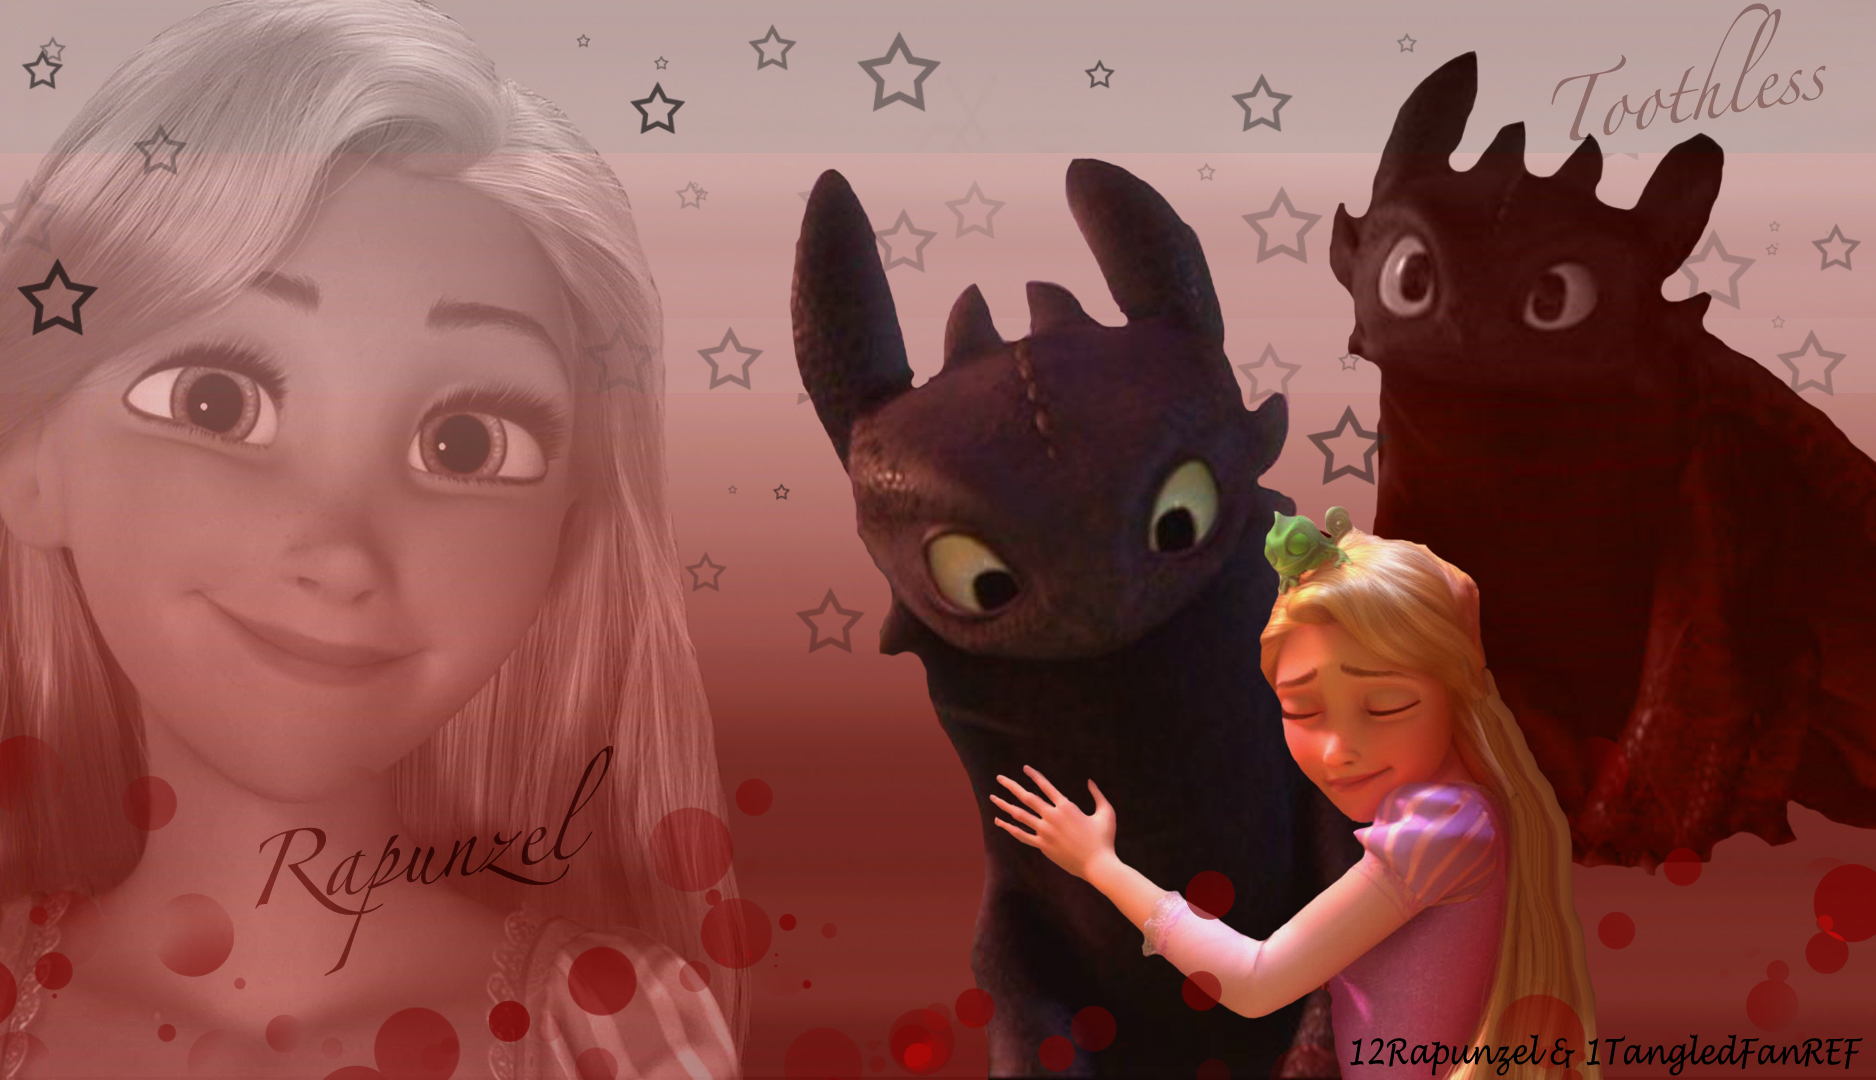 Rapunzel and Toothless Friendship